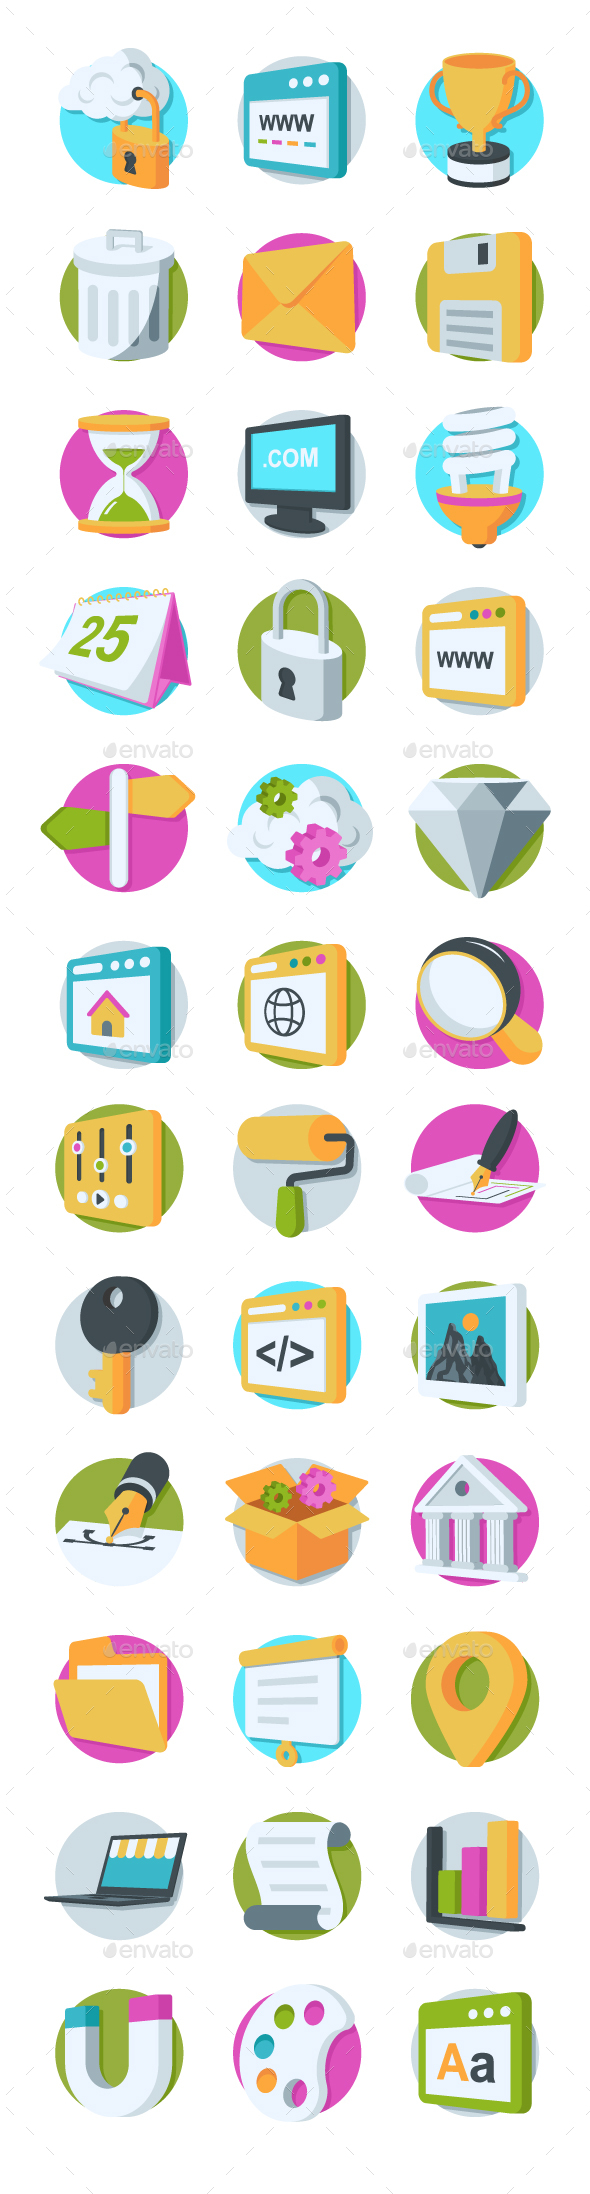 GraphicRiver 36 Web Design and Development Icons 20750262